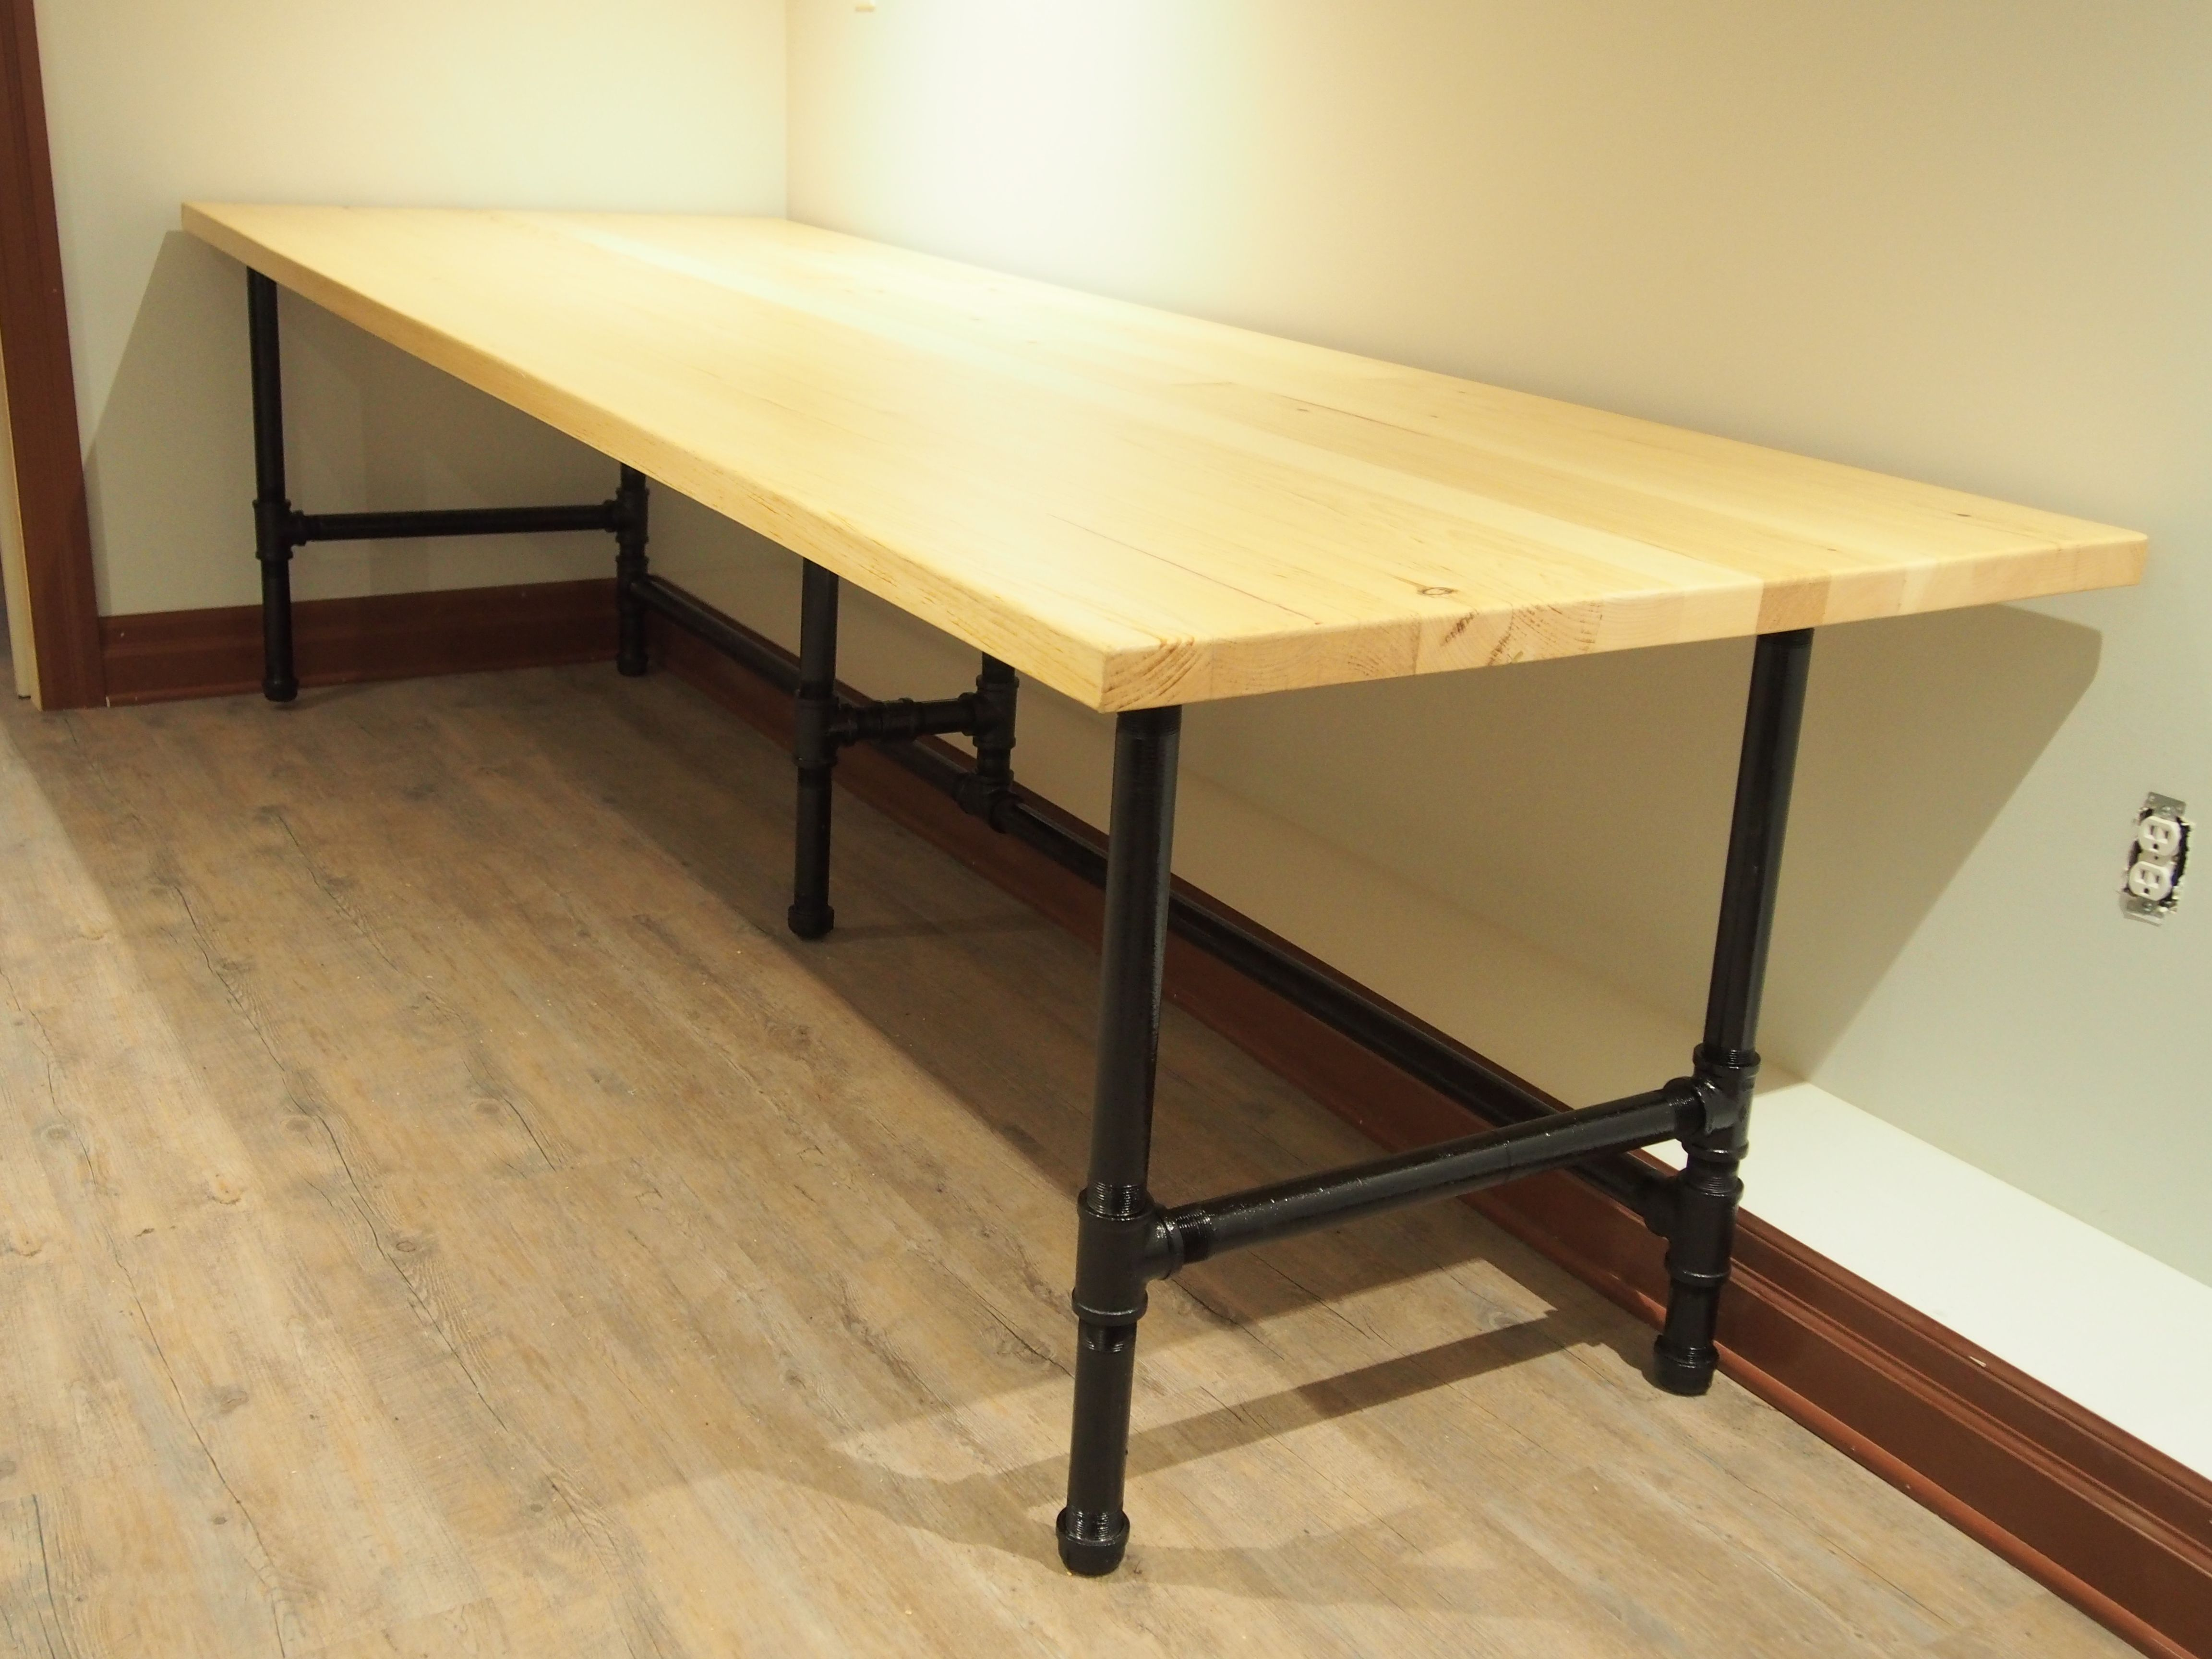 Long Computer Desk Made With Spare Metal Pipes And Wood Planks